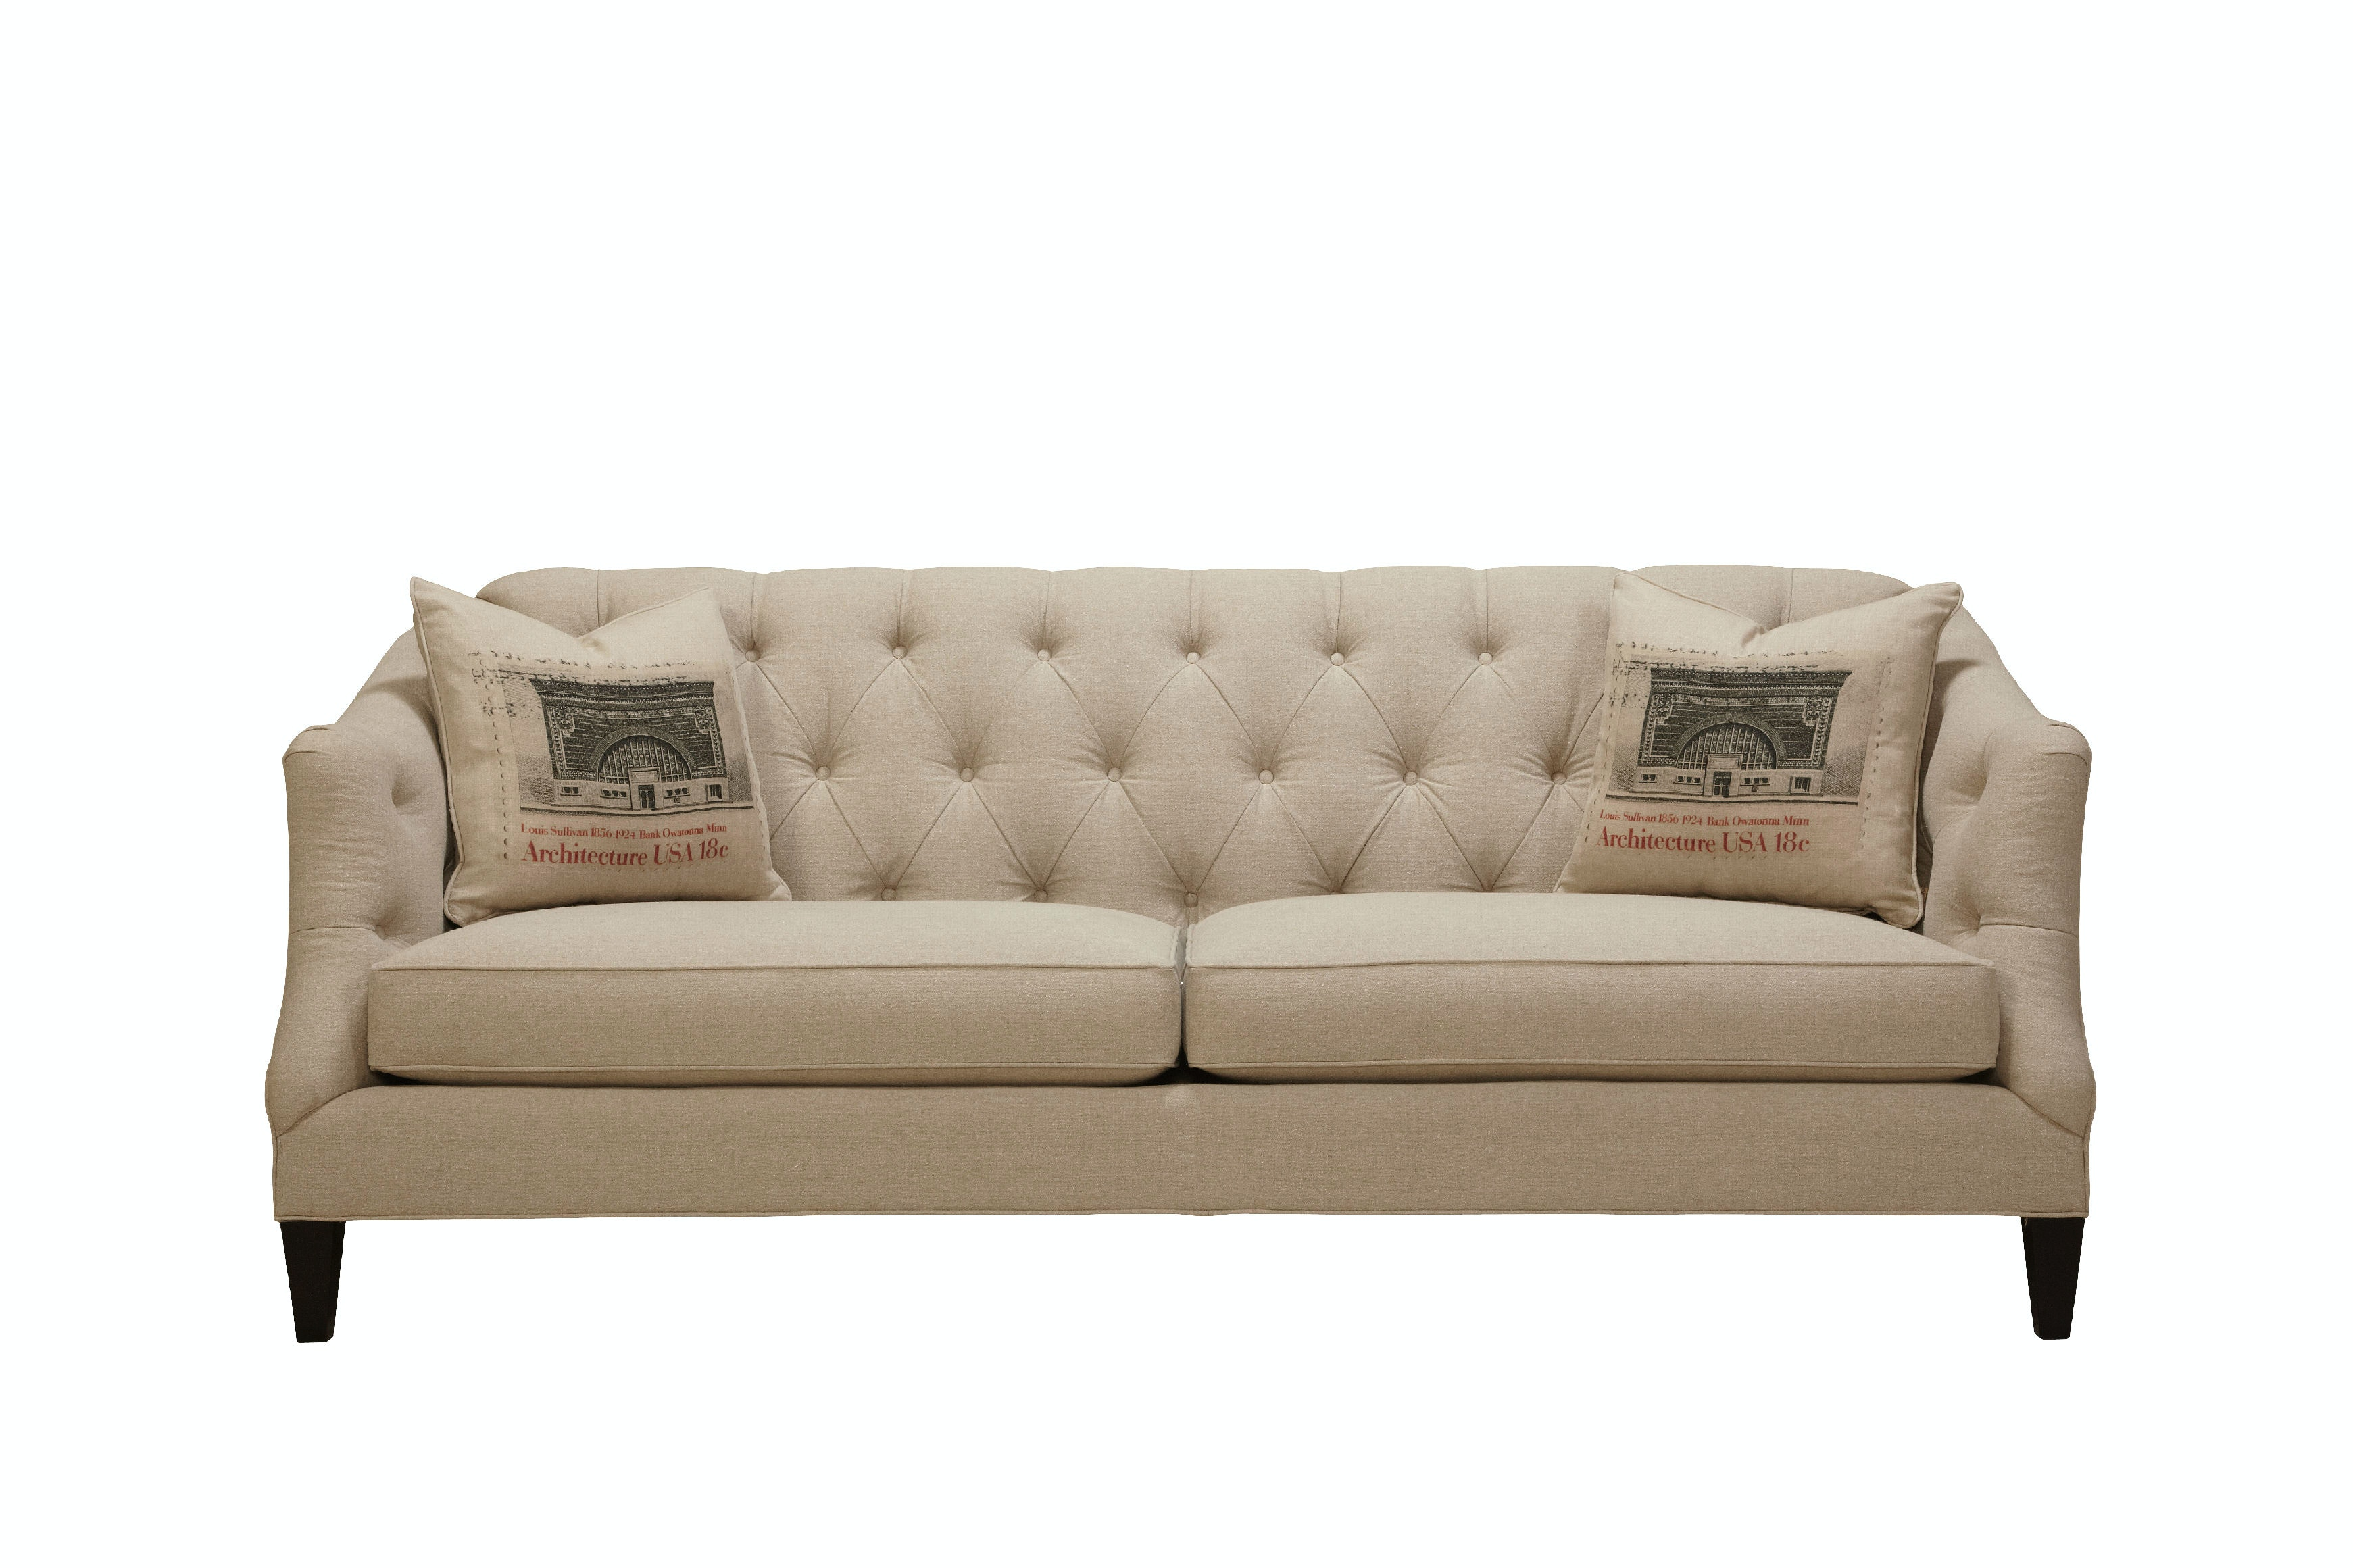 bench seat sofa. Southern Furniture Camby Bench Seat Sofa-2 TPS 25261 Sofa